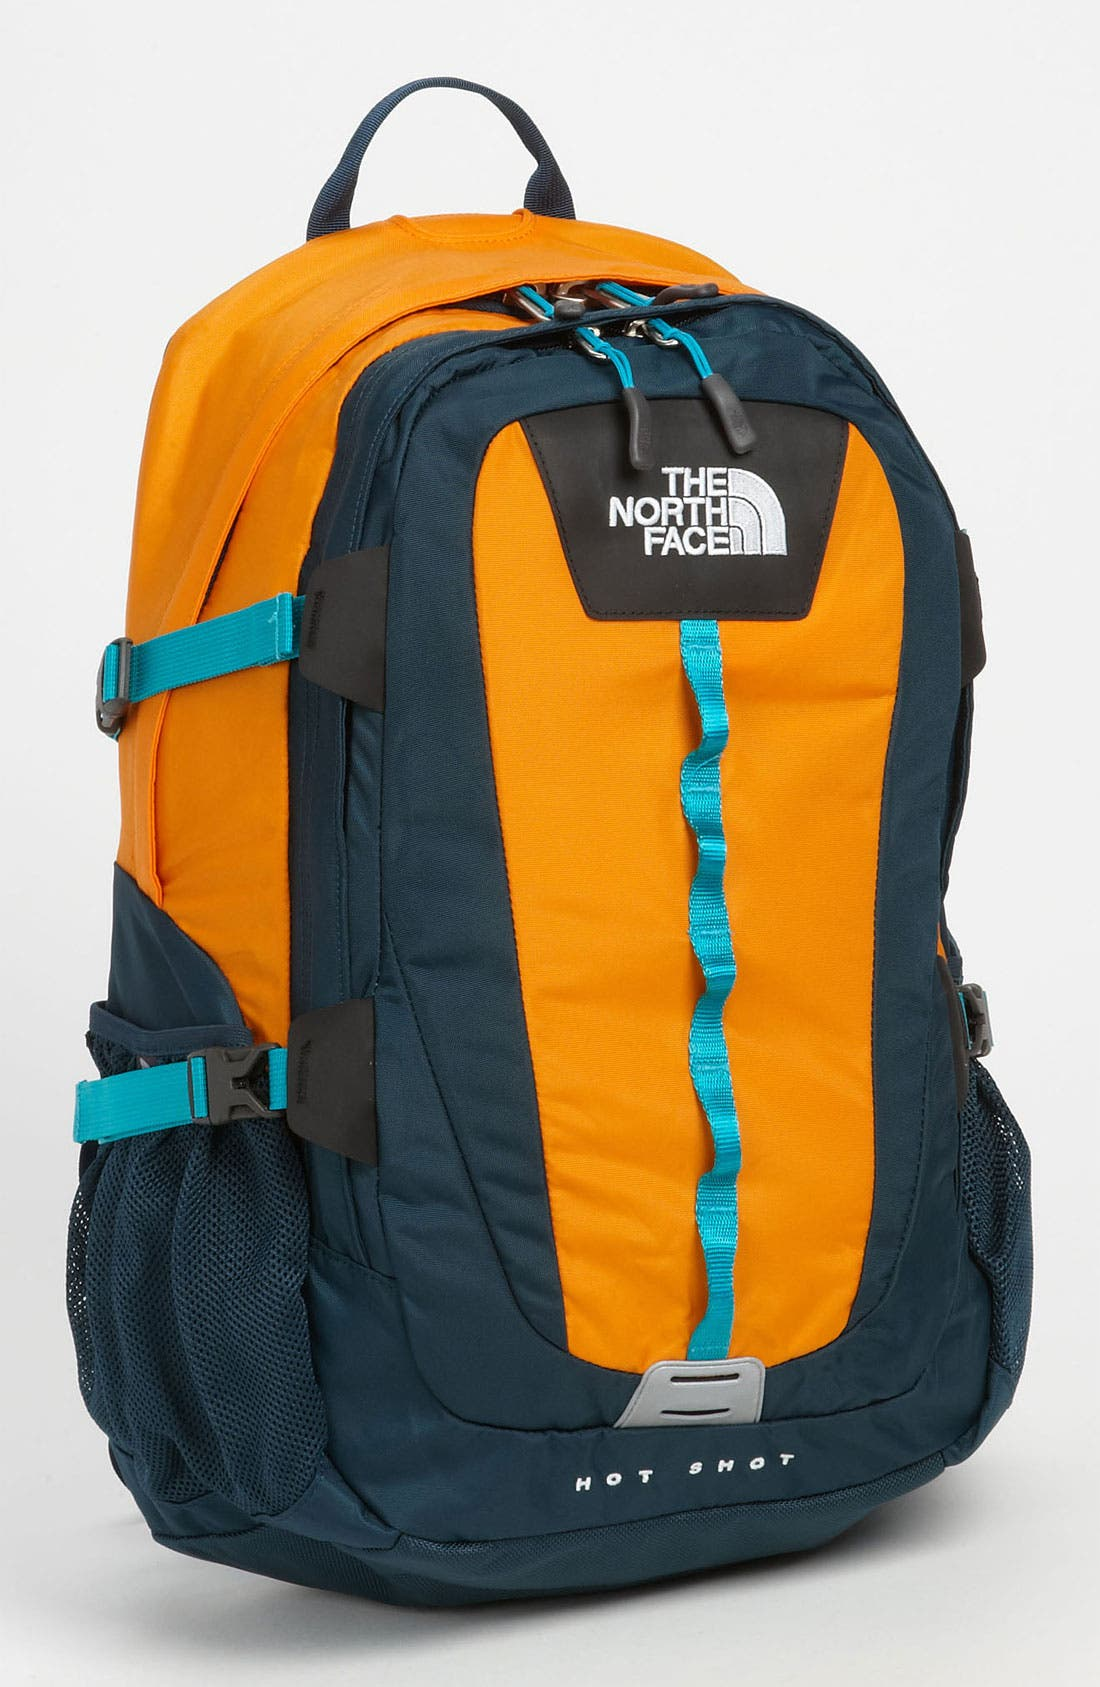 Main Image - The North Face 'Hot Shot' Backpack